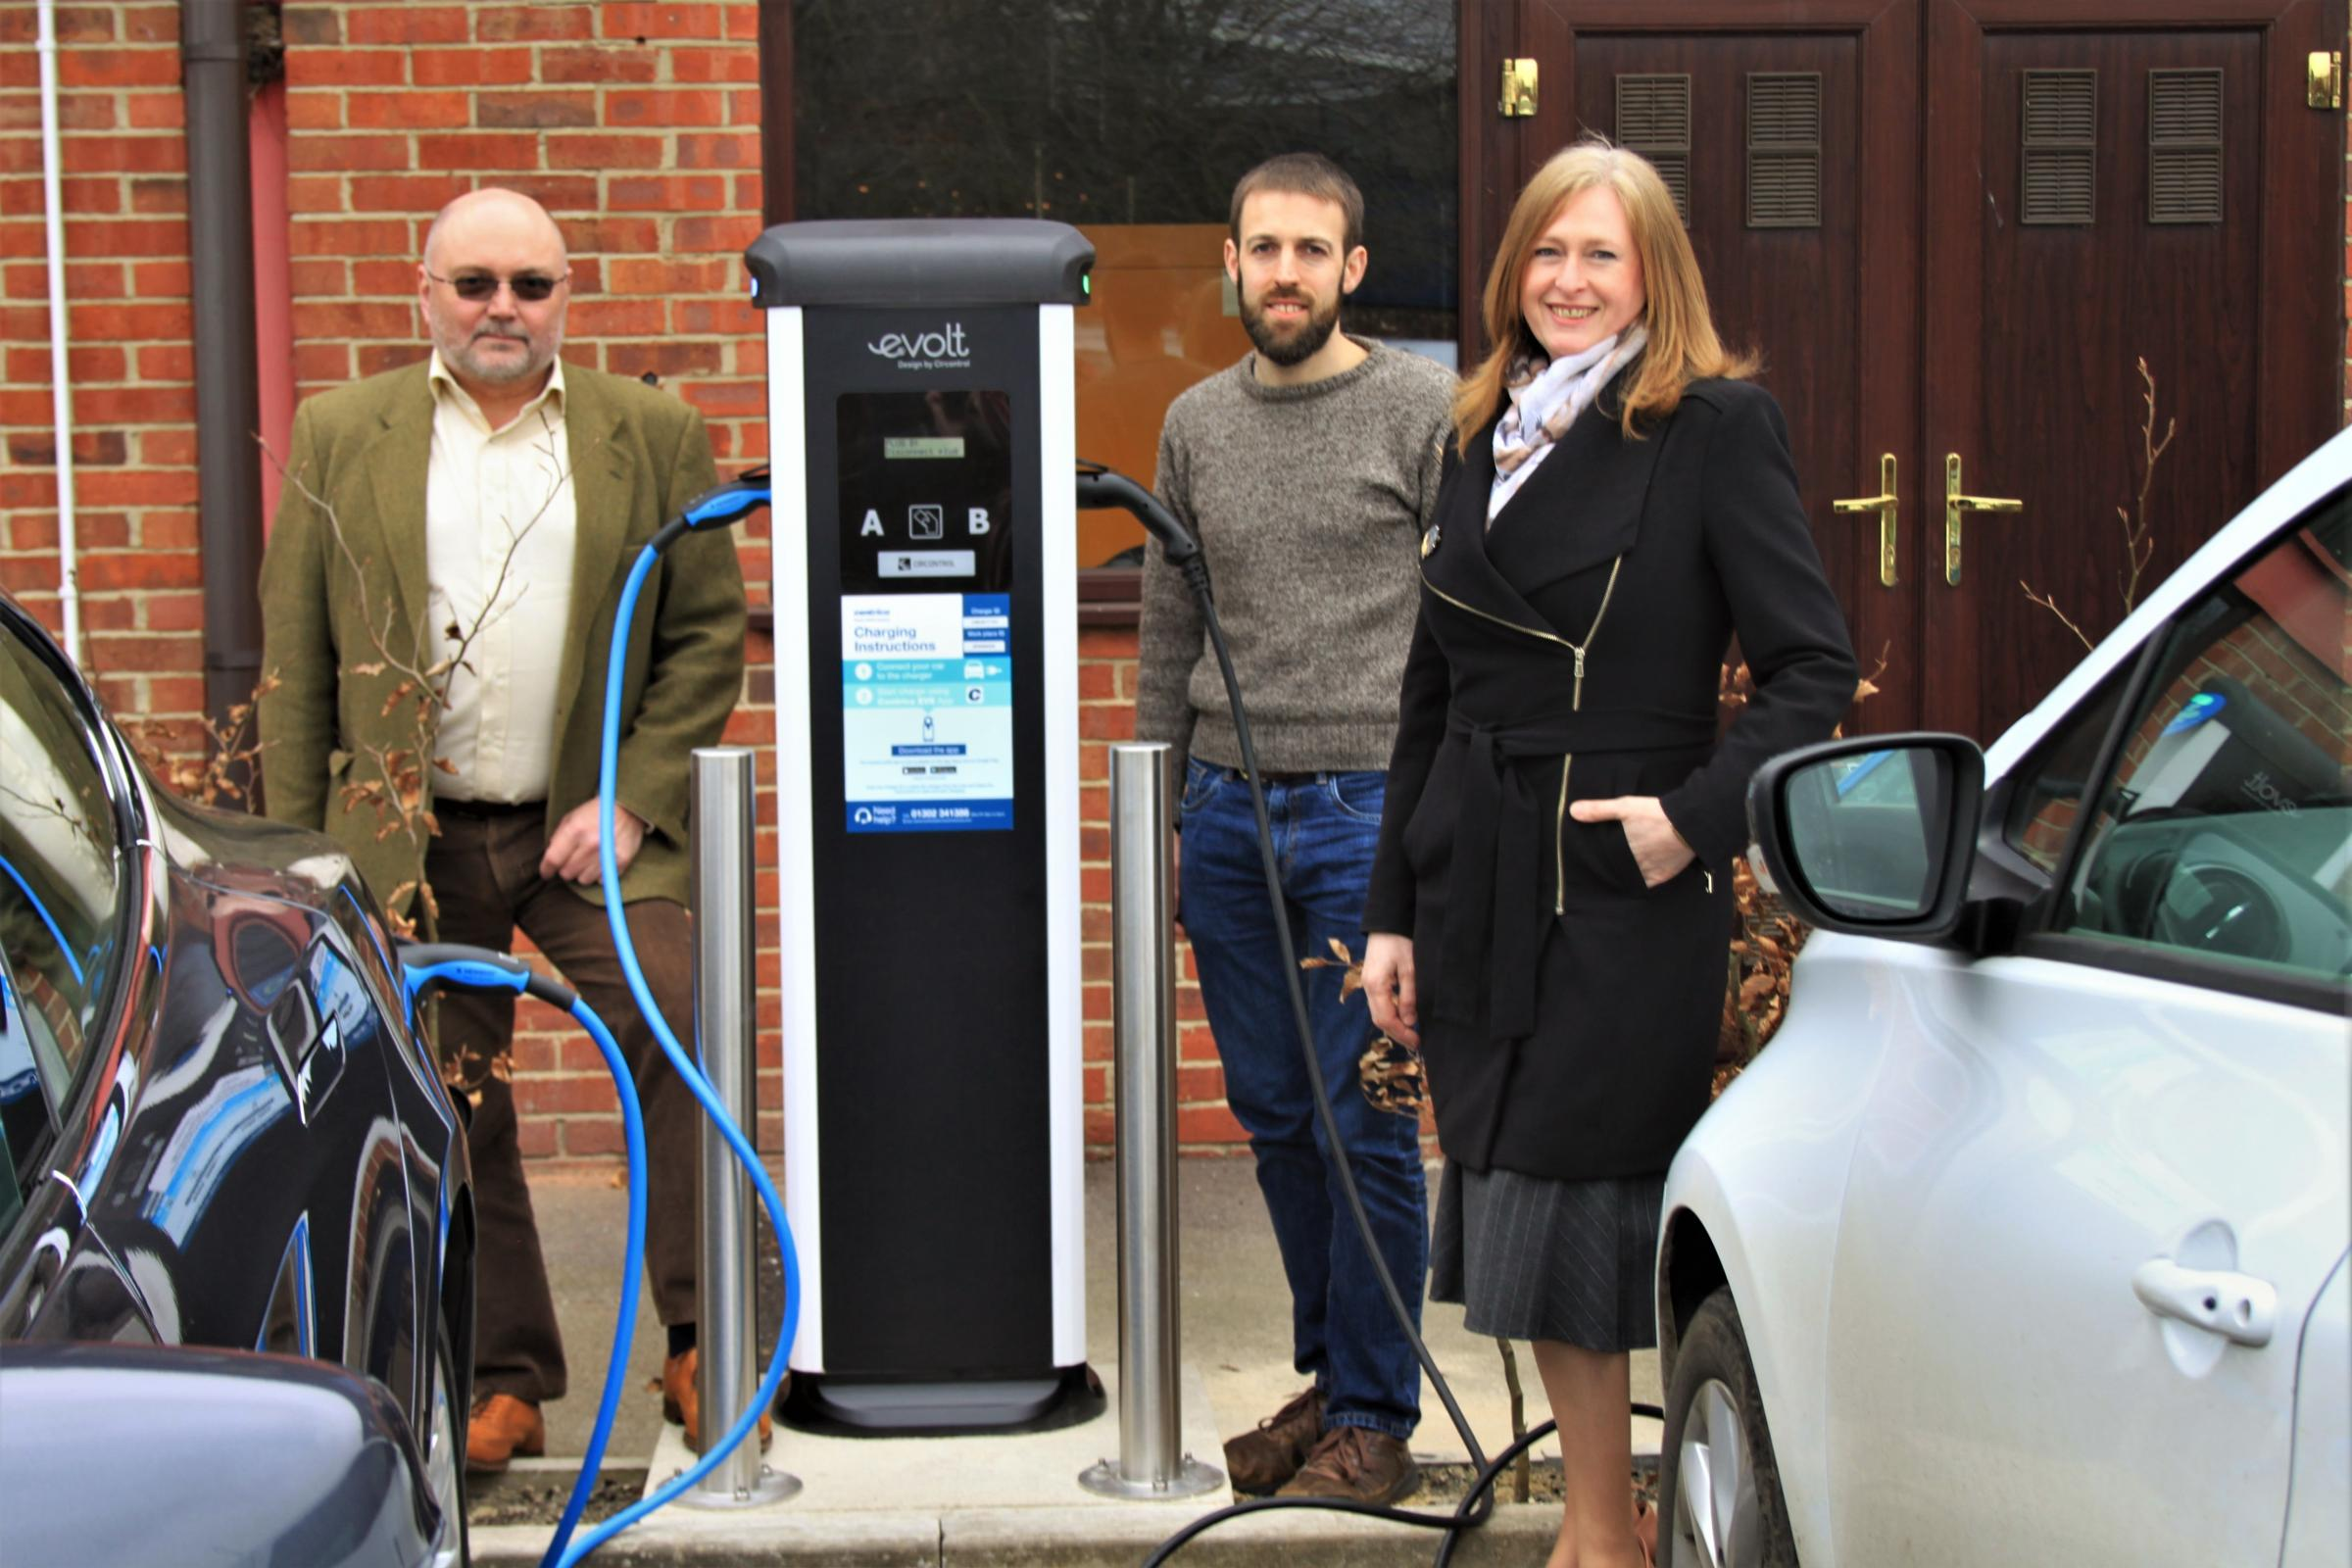 Electric vehicle owners Martin Loveridge and David Gruar with Jennings' Rhonda Leighton at the new electric vehicle charging station at Monument Business Park in Chalgrove Pic Monument Business Park